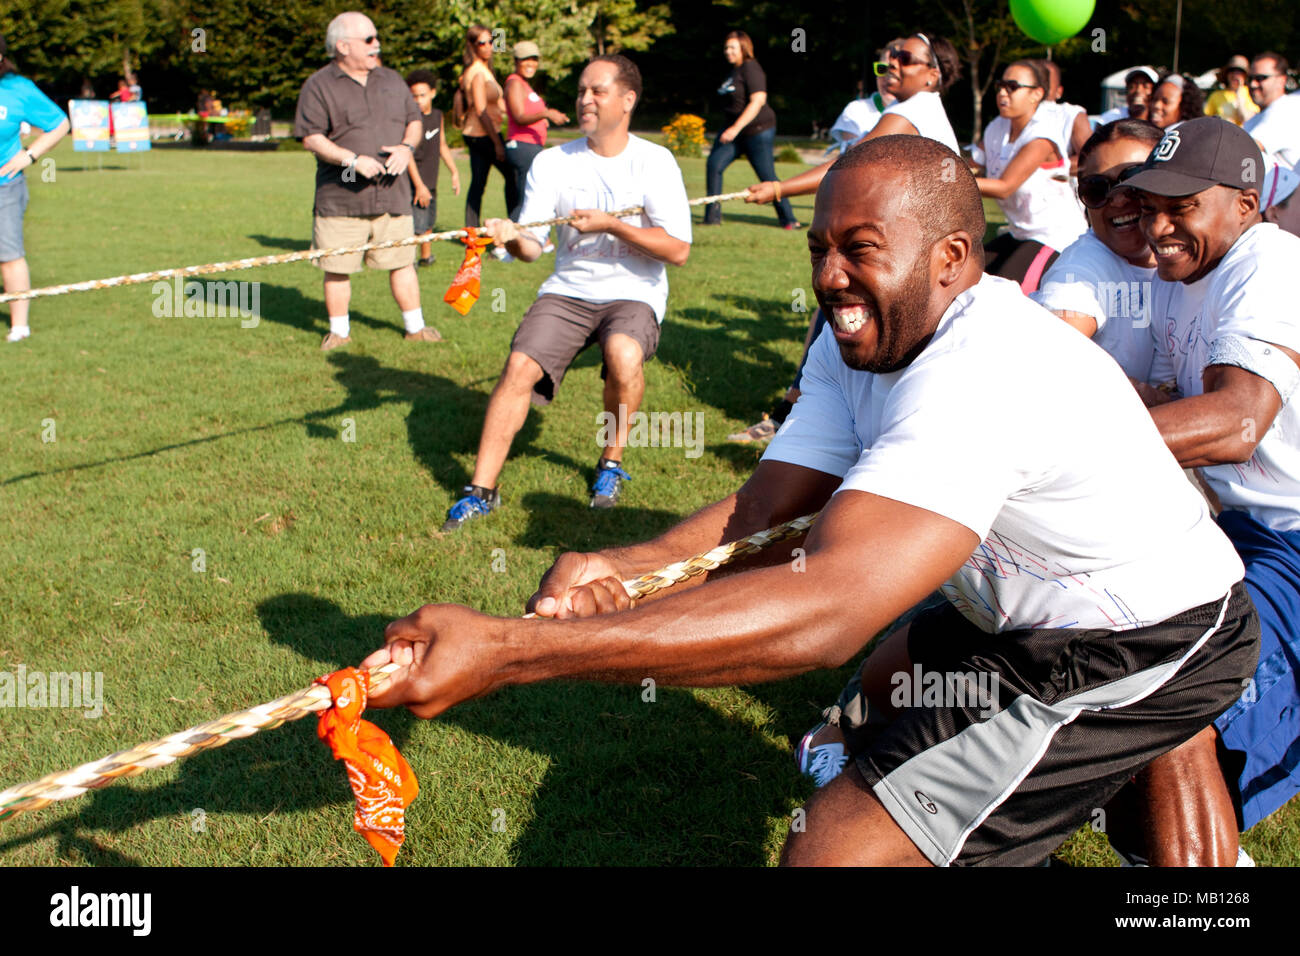 Teams pull hard in the tug-of-war competition at A Day For Kids, an event where adults play kids games for charity on September 7, 2013 in Atlanta, GA. - Stock Image